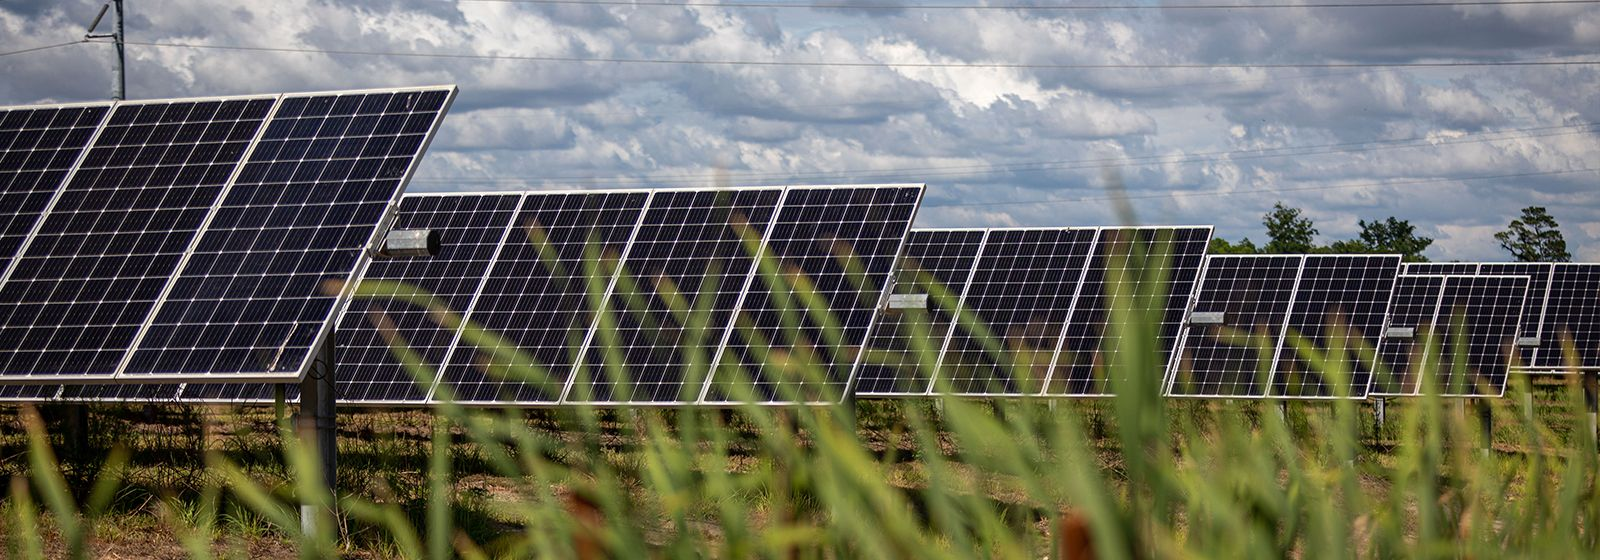 All about solar energy